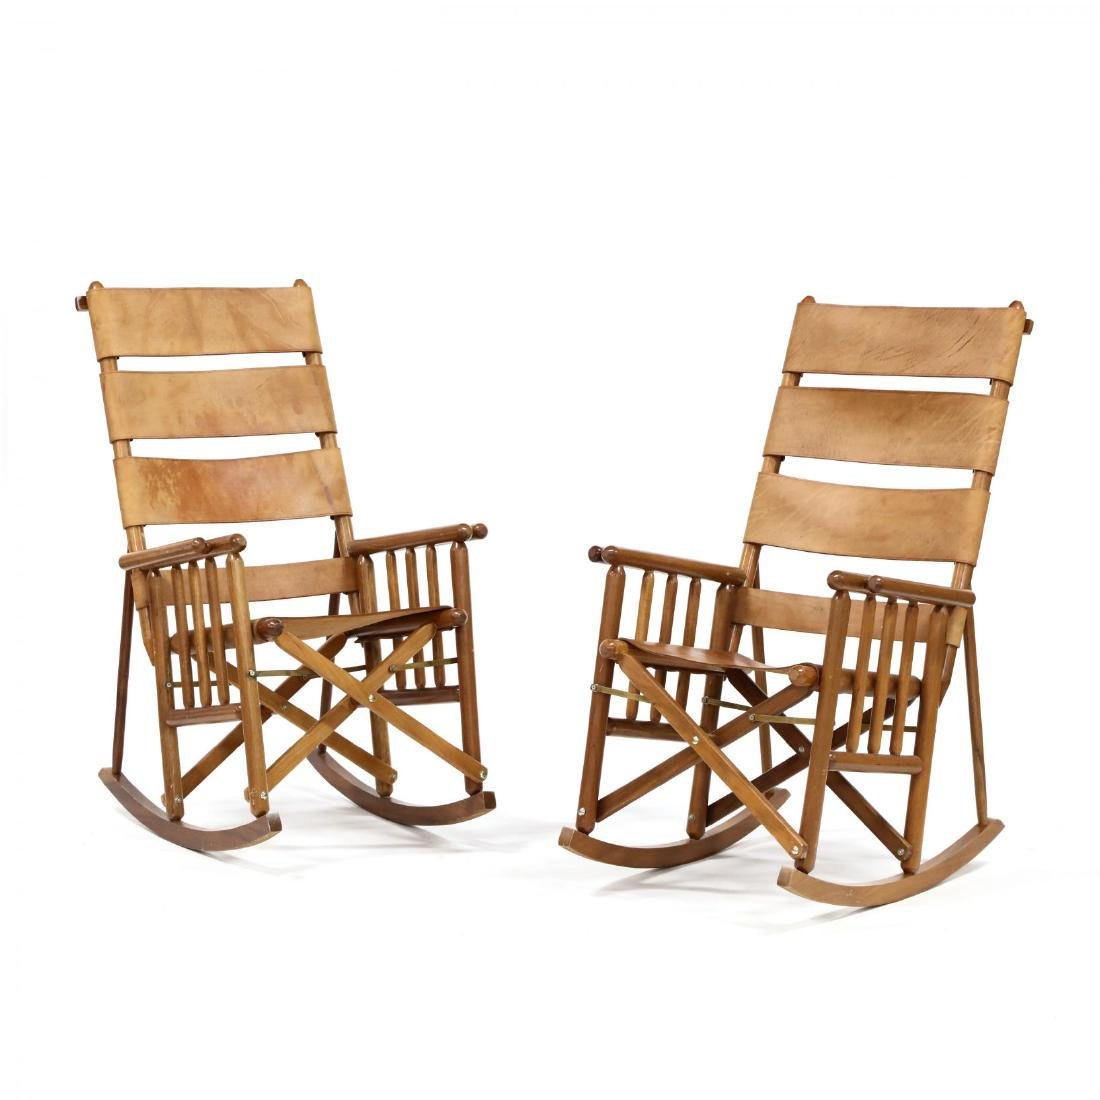 Pair of Modern Teak and Leather Campaign Rocking Chairs